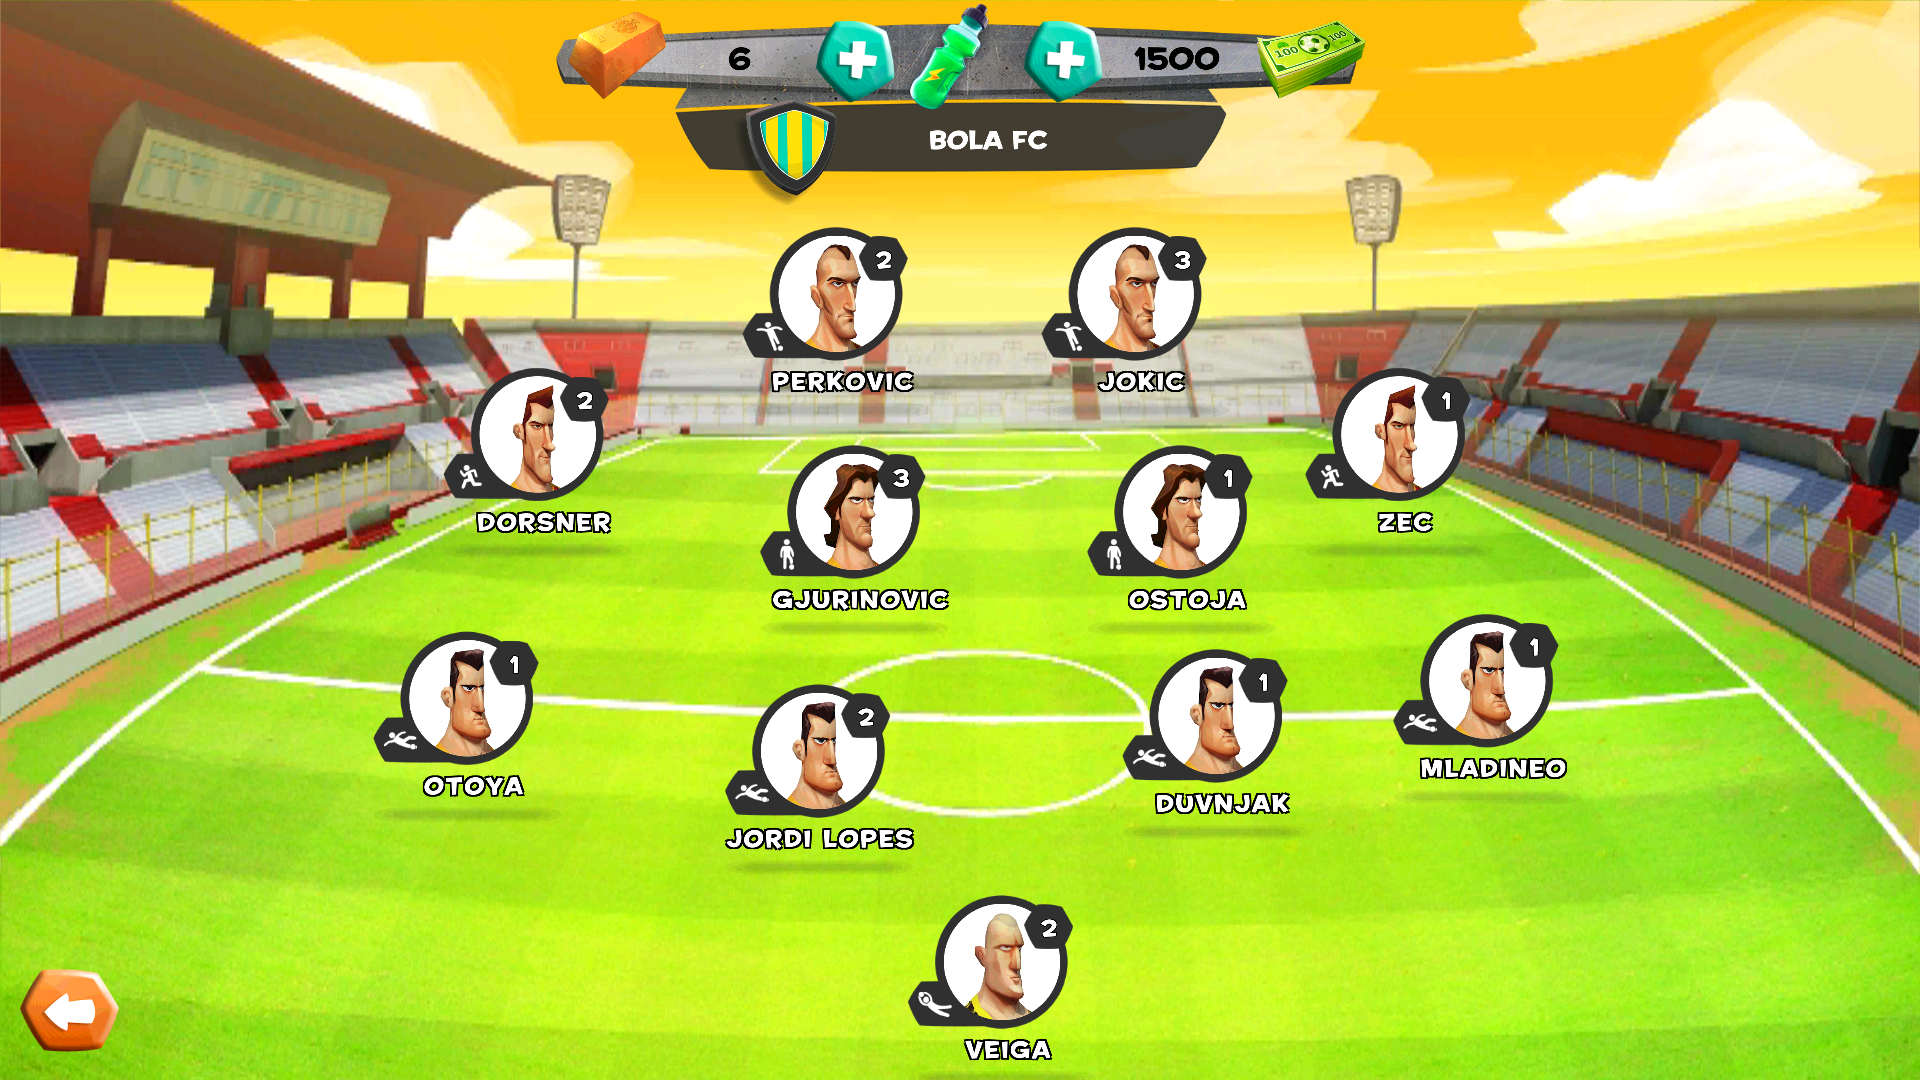 [МОД: Много денег] Disney Bola Soccer - Android games ...